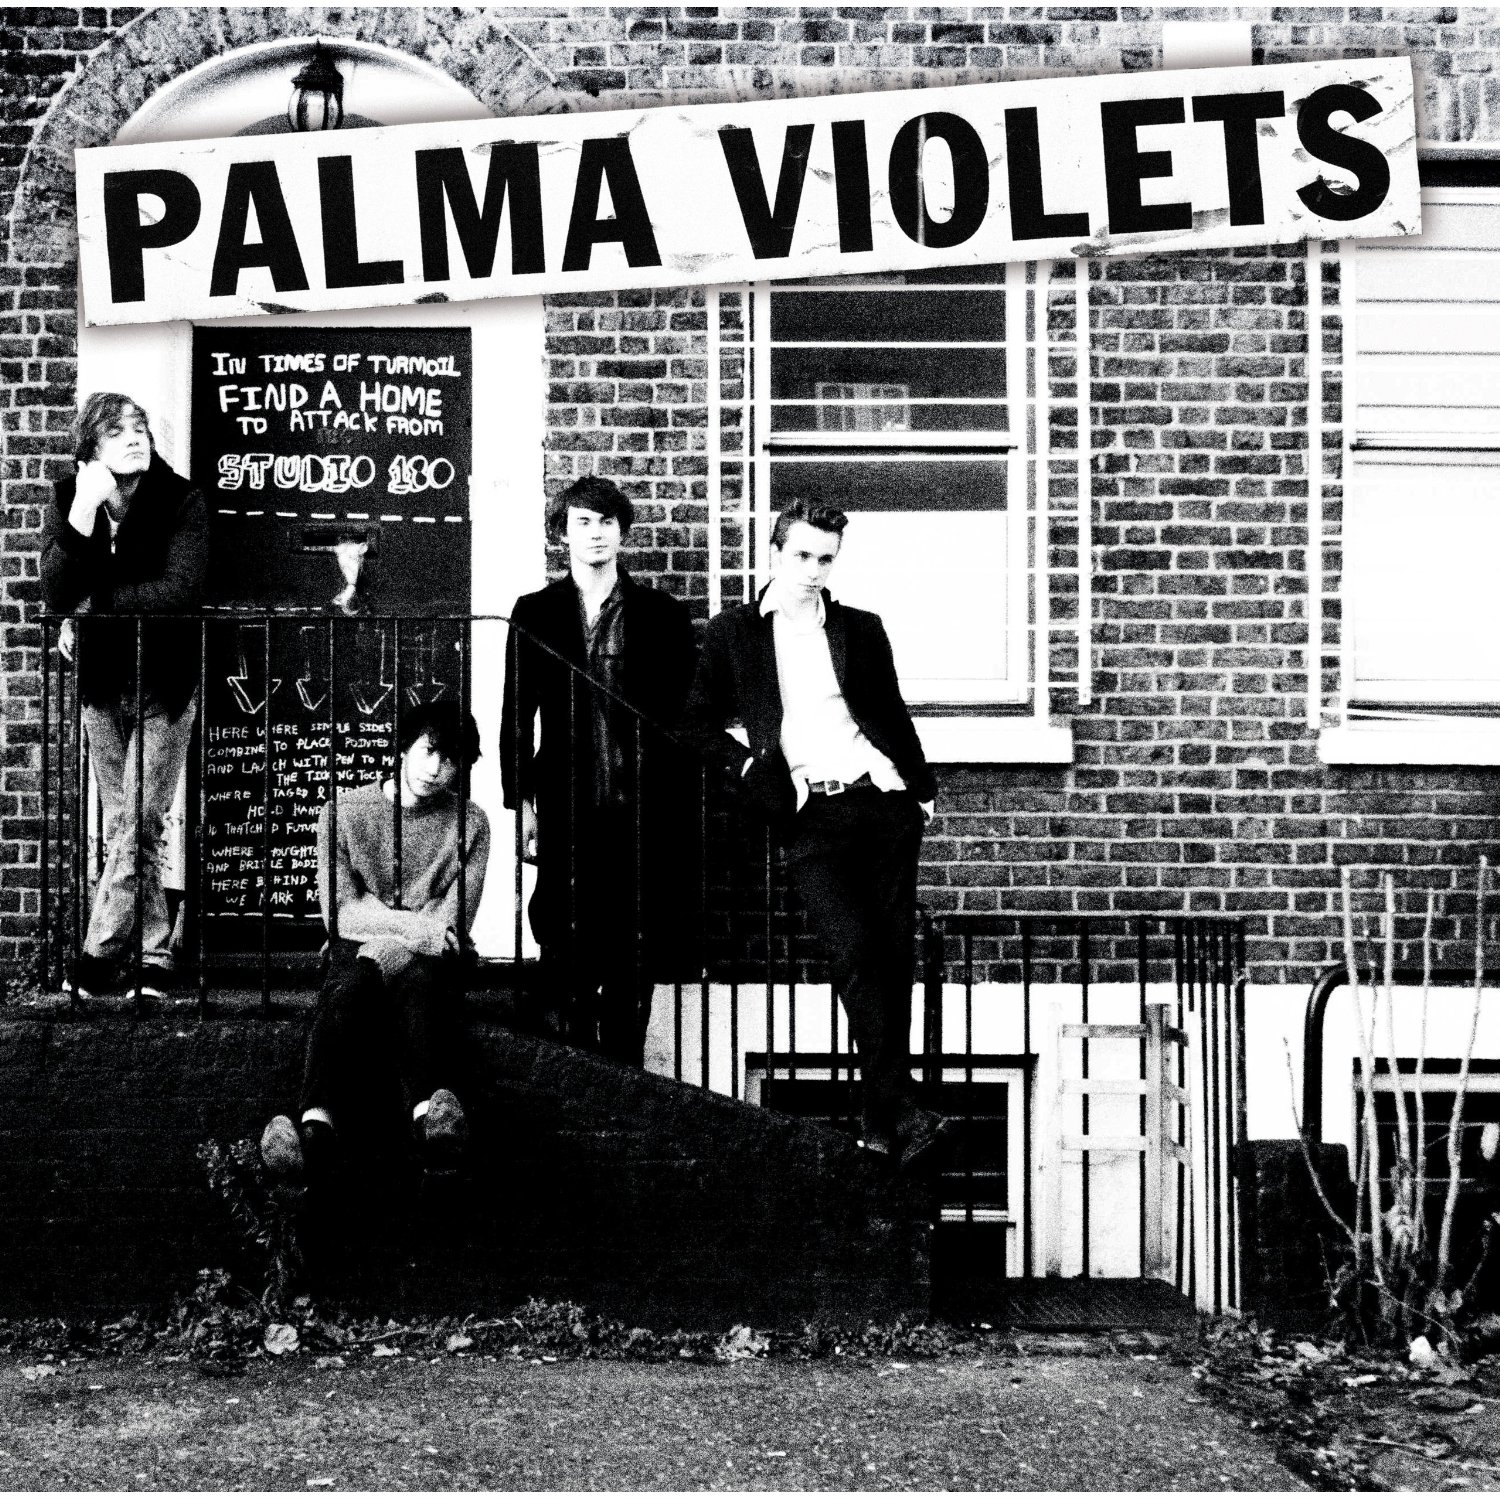 Here's Why We're Worried About The Palma Violets